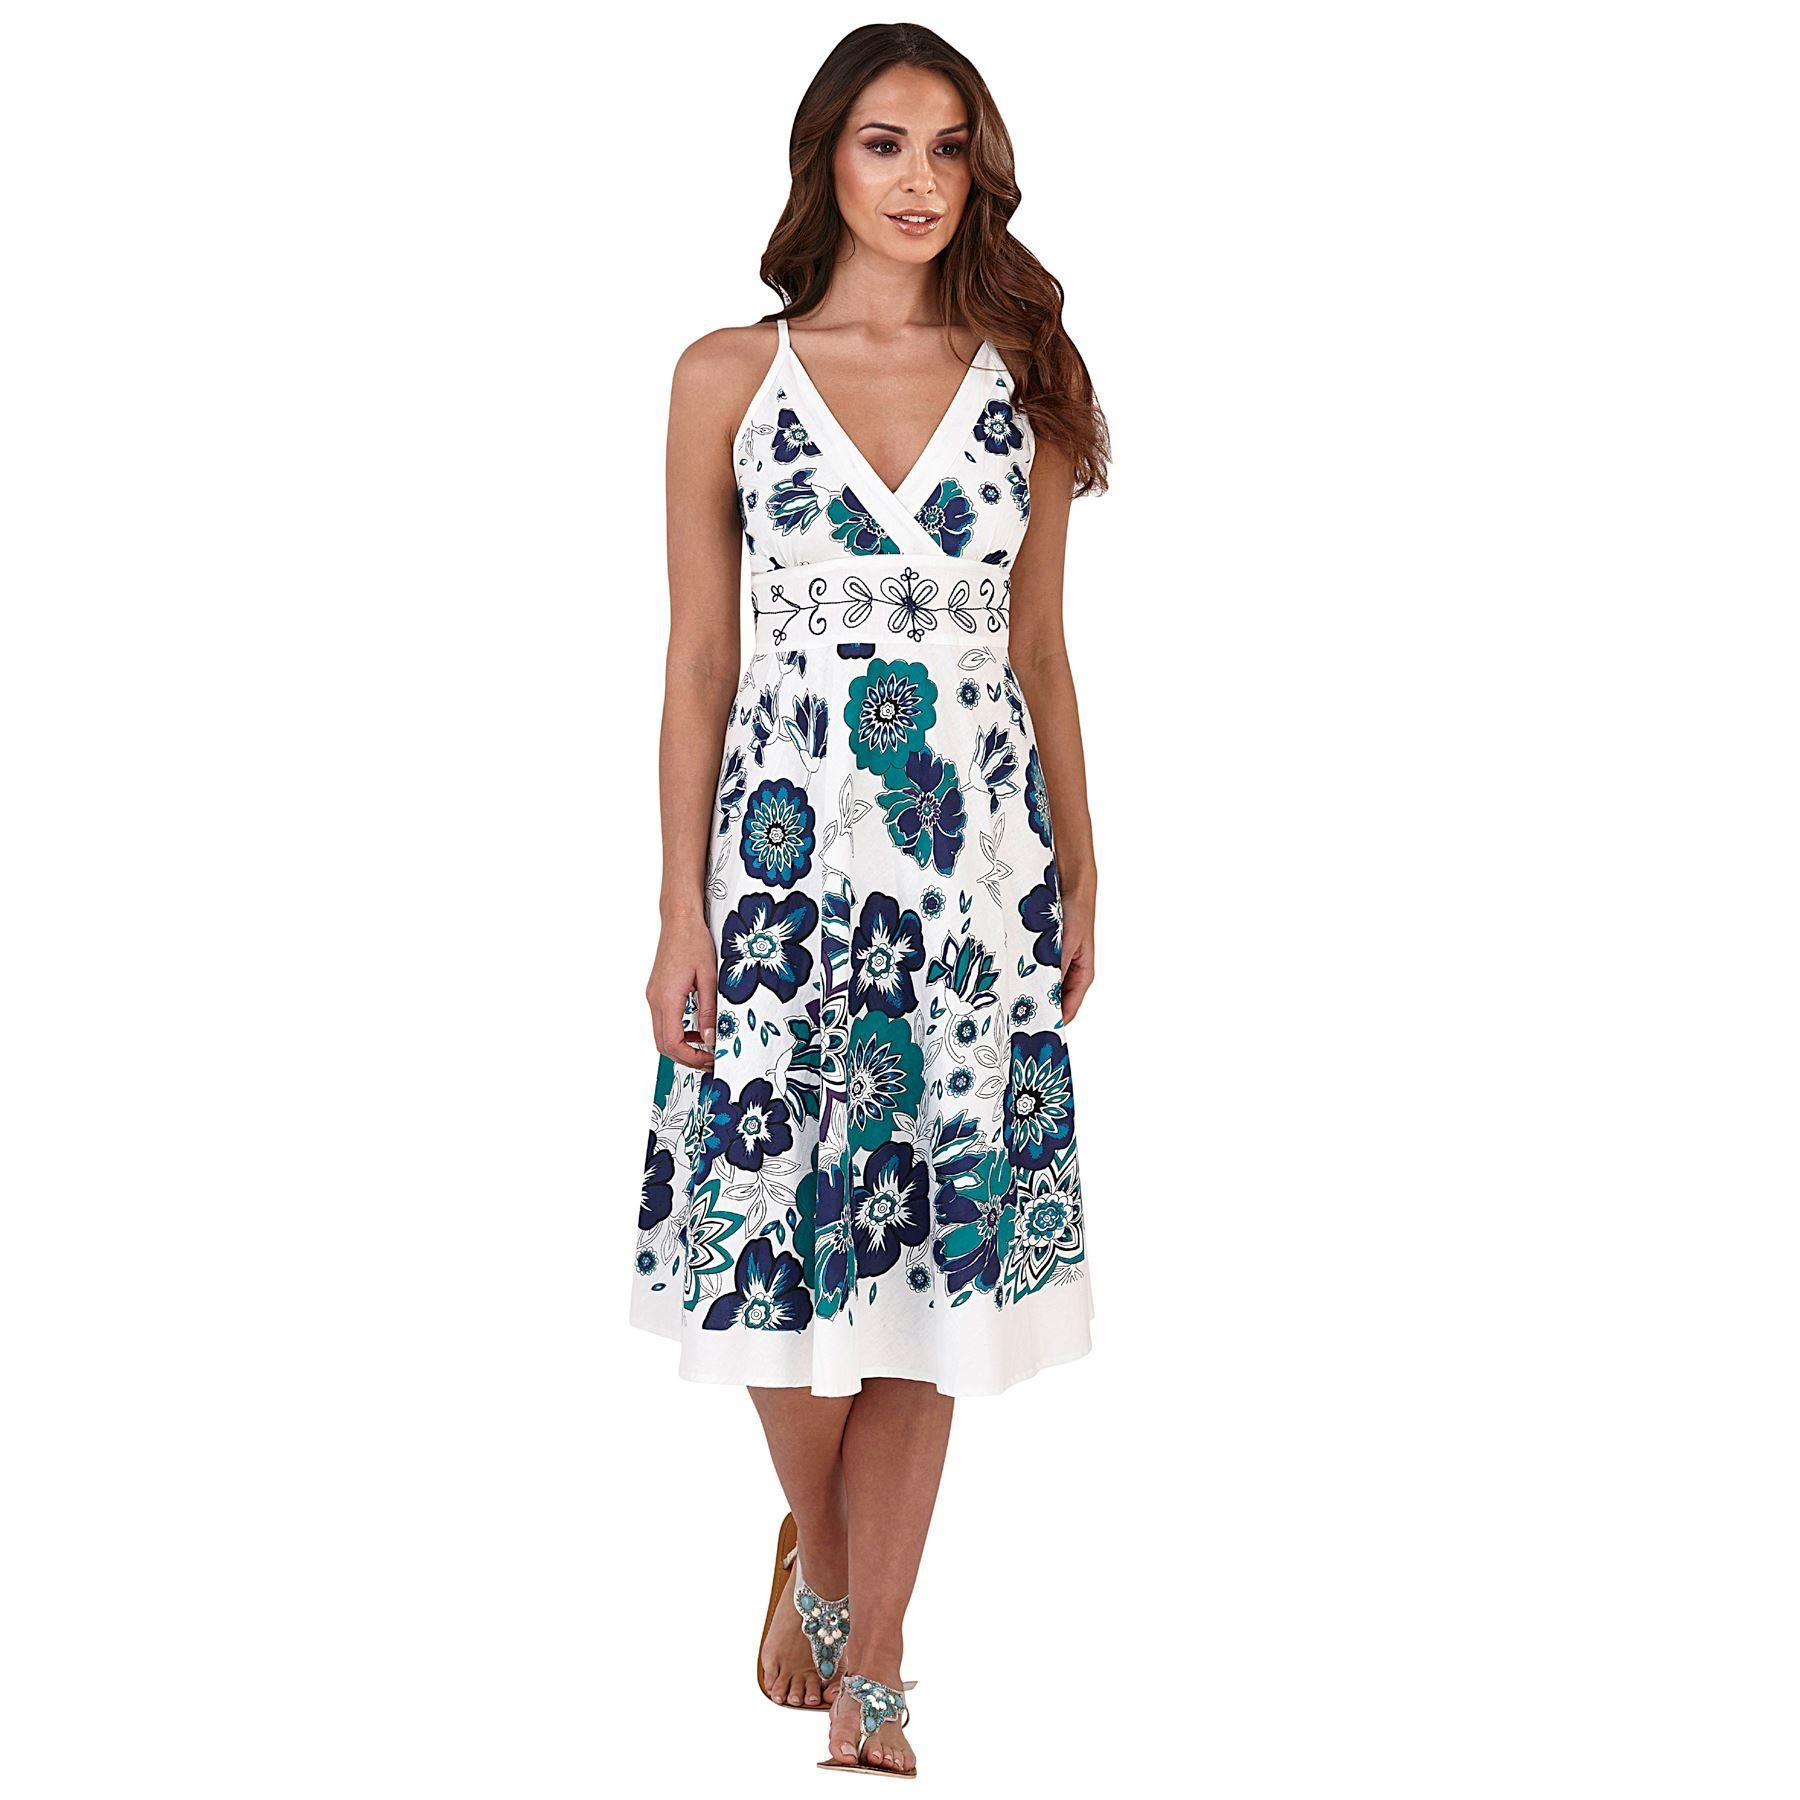 Pistachio Embroidered Crossover Dress - Green